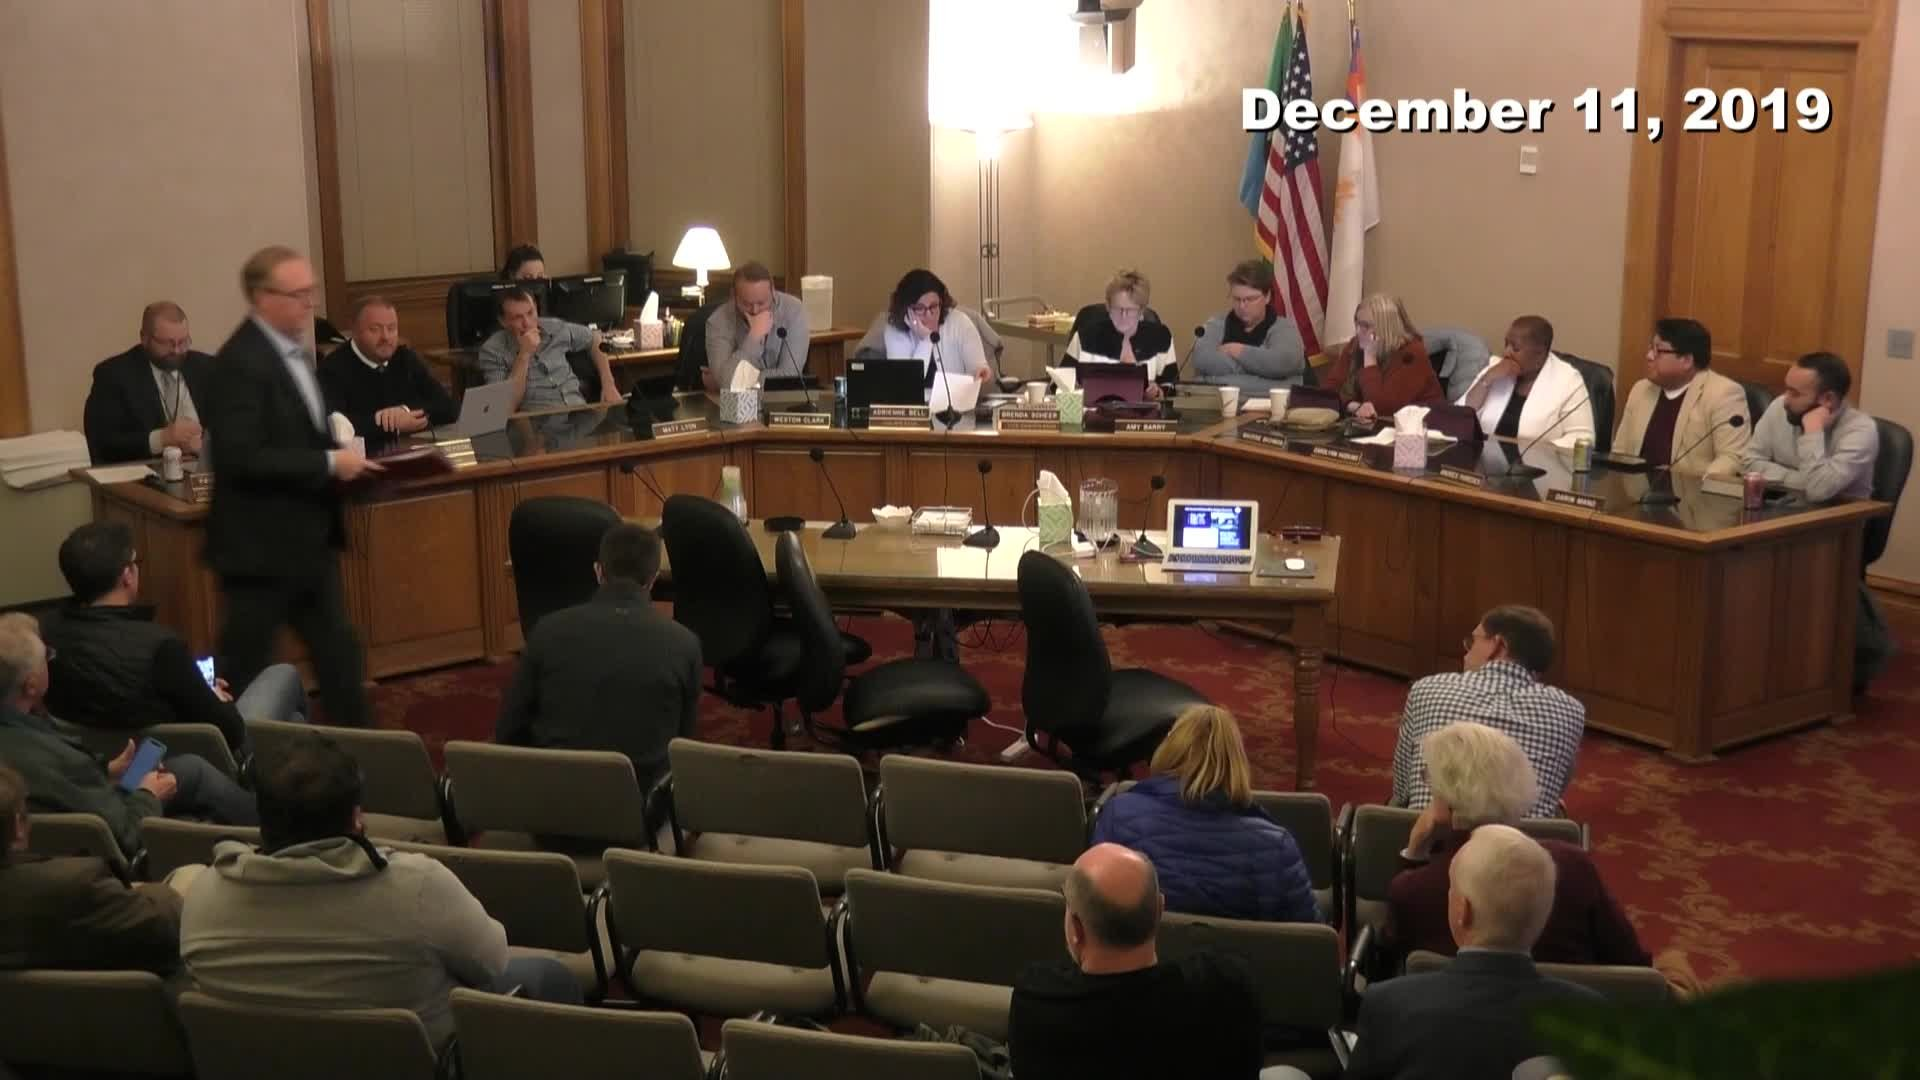 Planning Commission Meeting - 12/11/2019